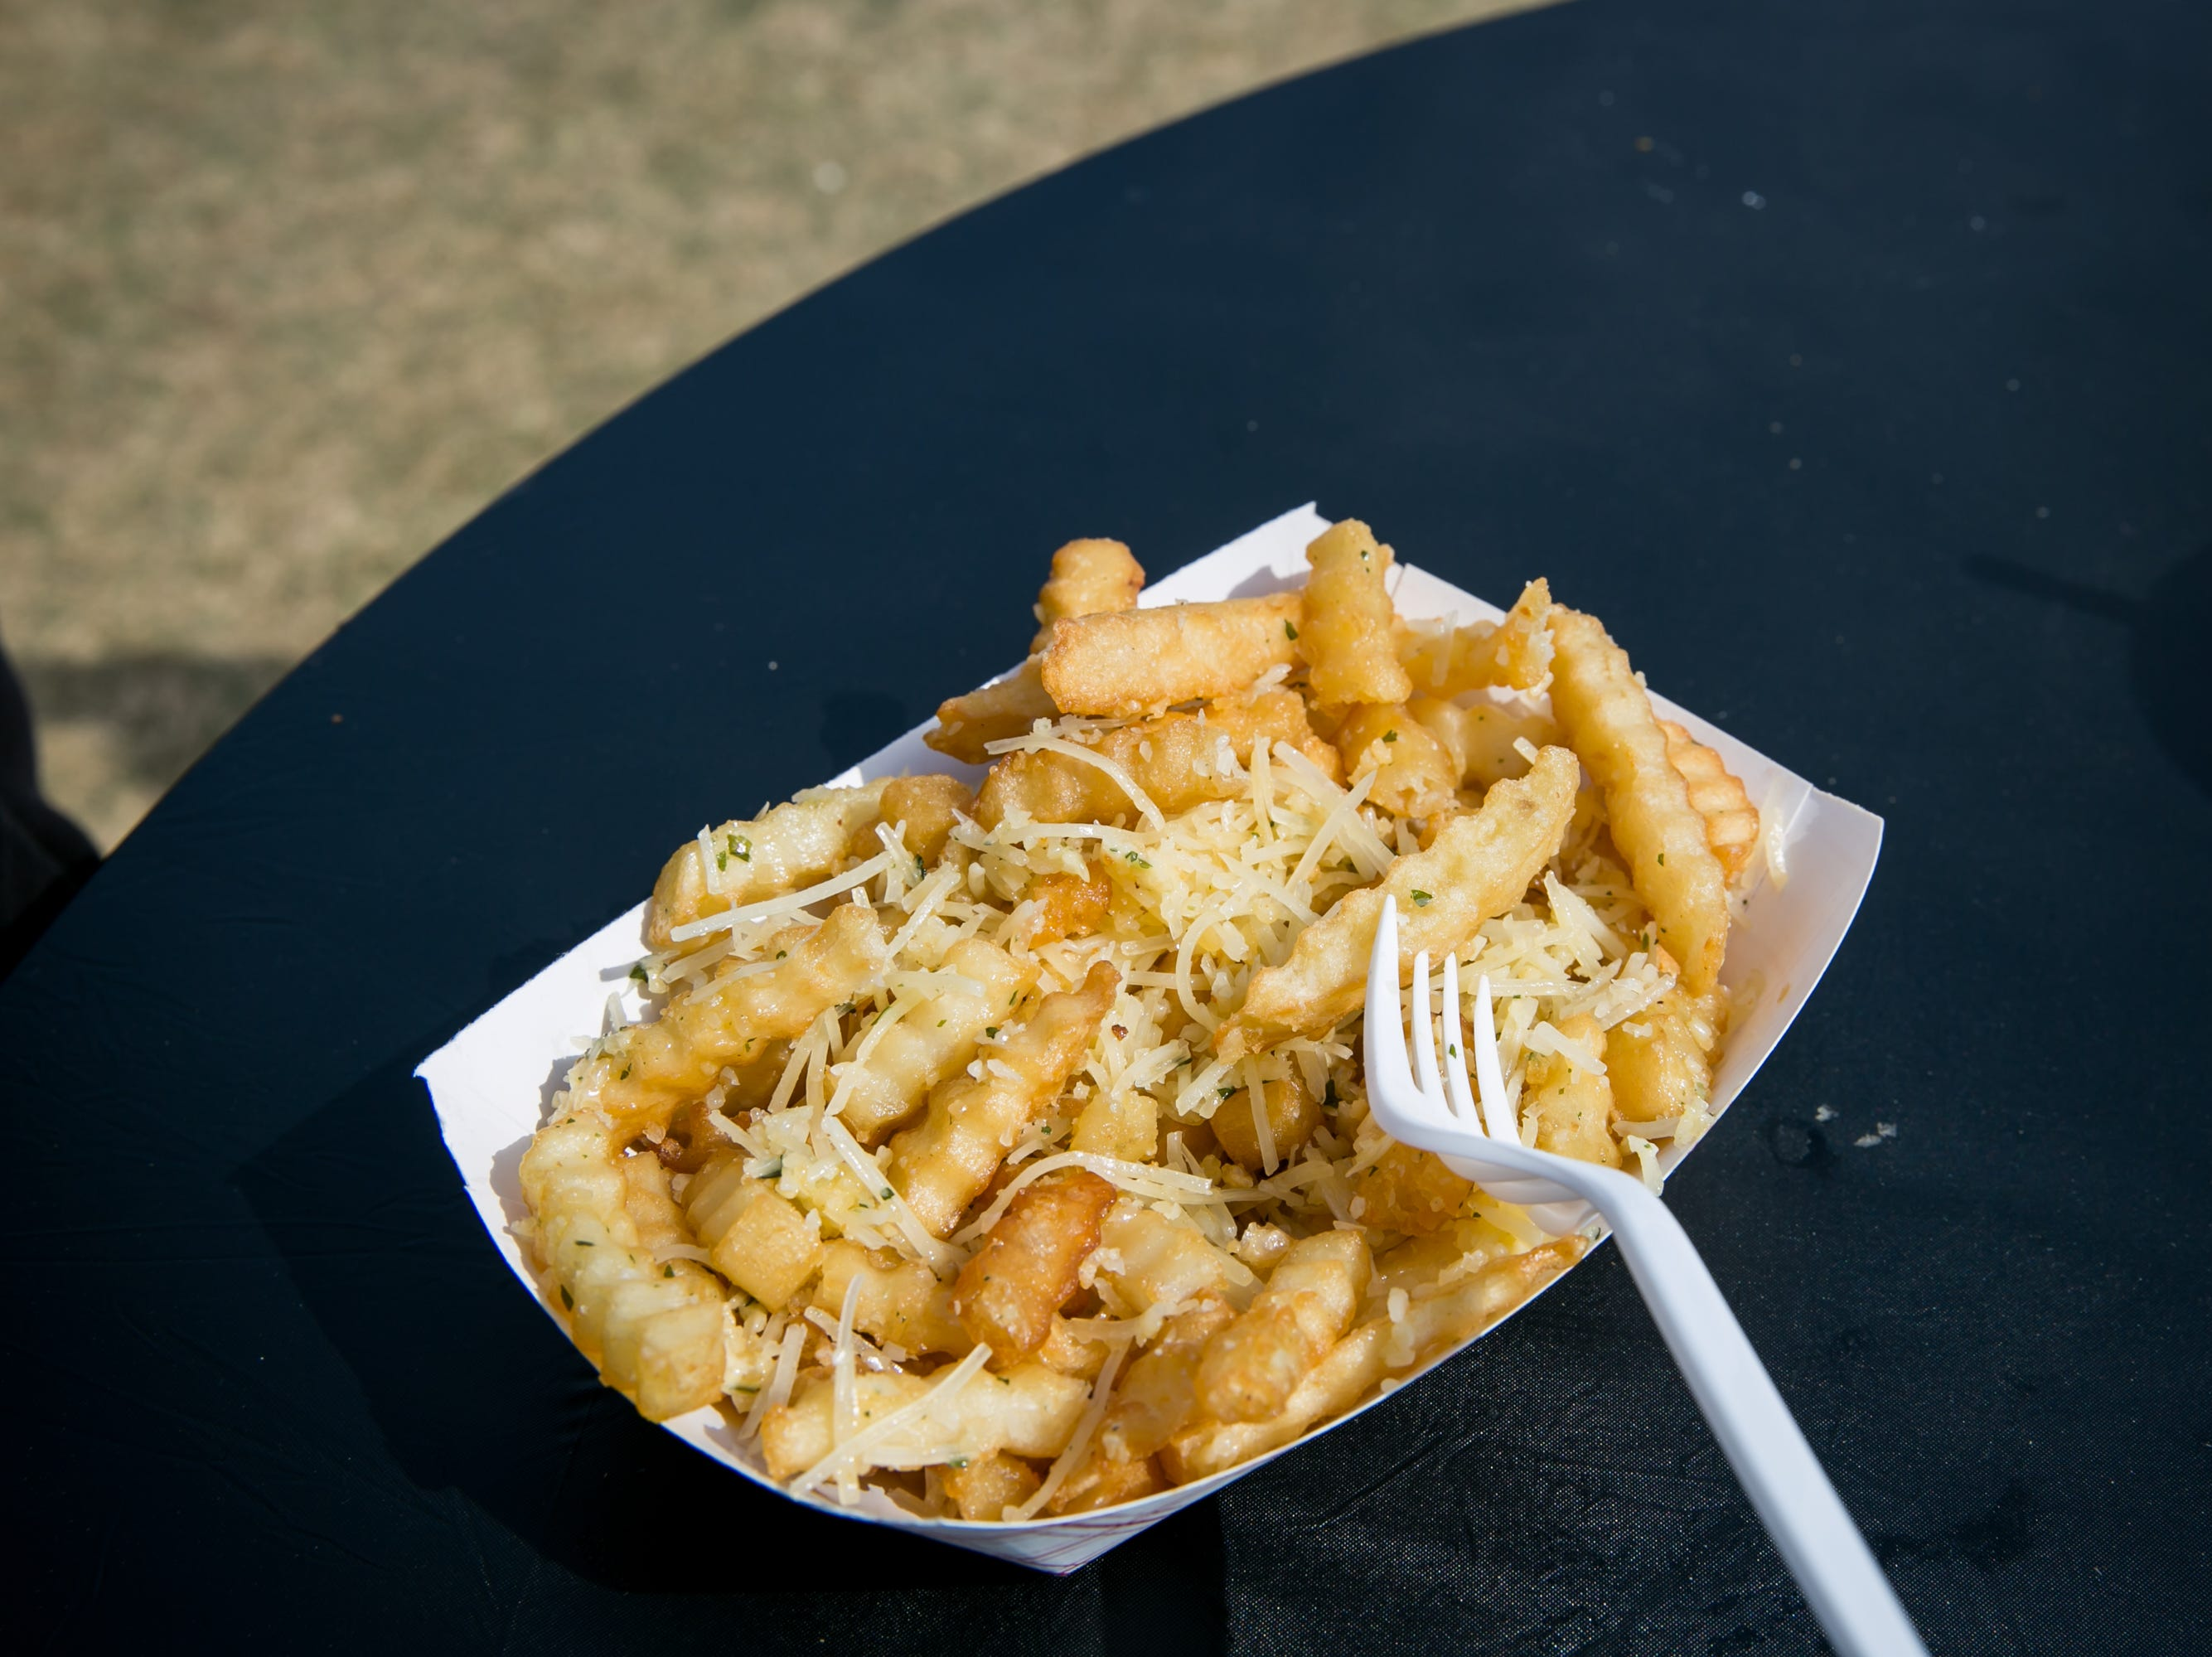 Burgers Amore's garlic fries with Parmesan were delicious during the Street Eats Food Truck Festival at Salt River Fields near Scottsdale on Feb. 17, 2019.